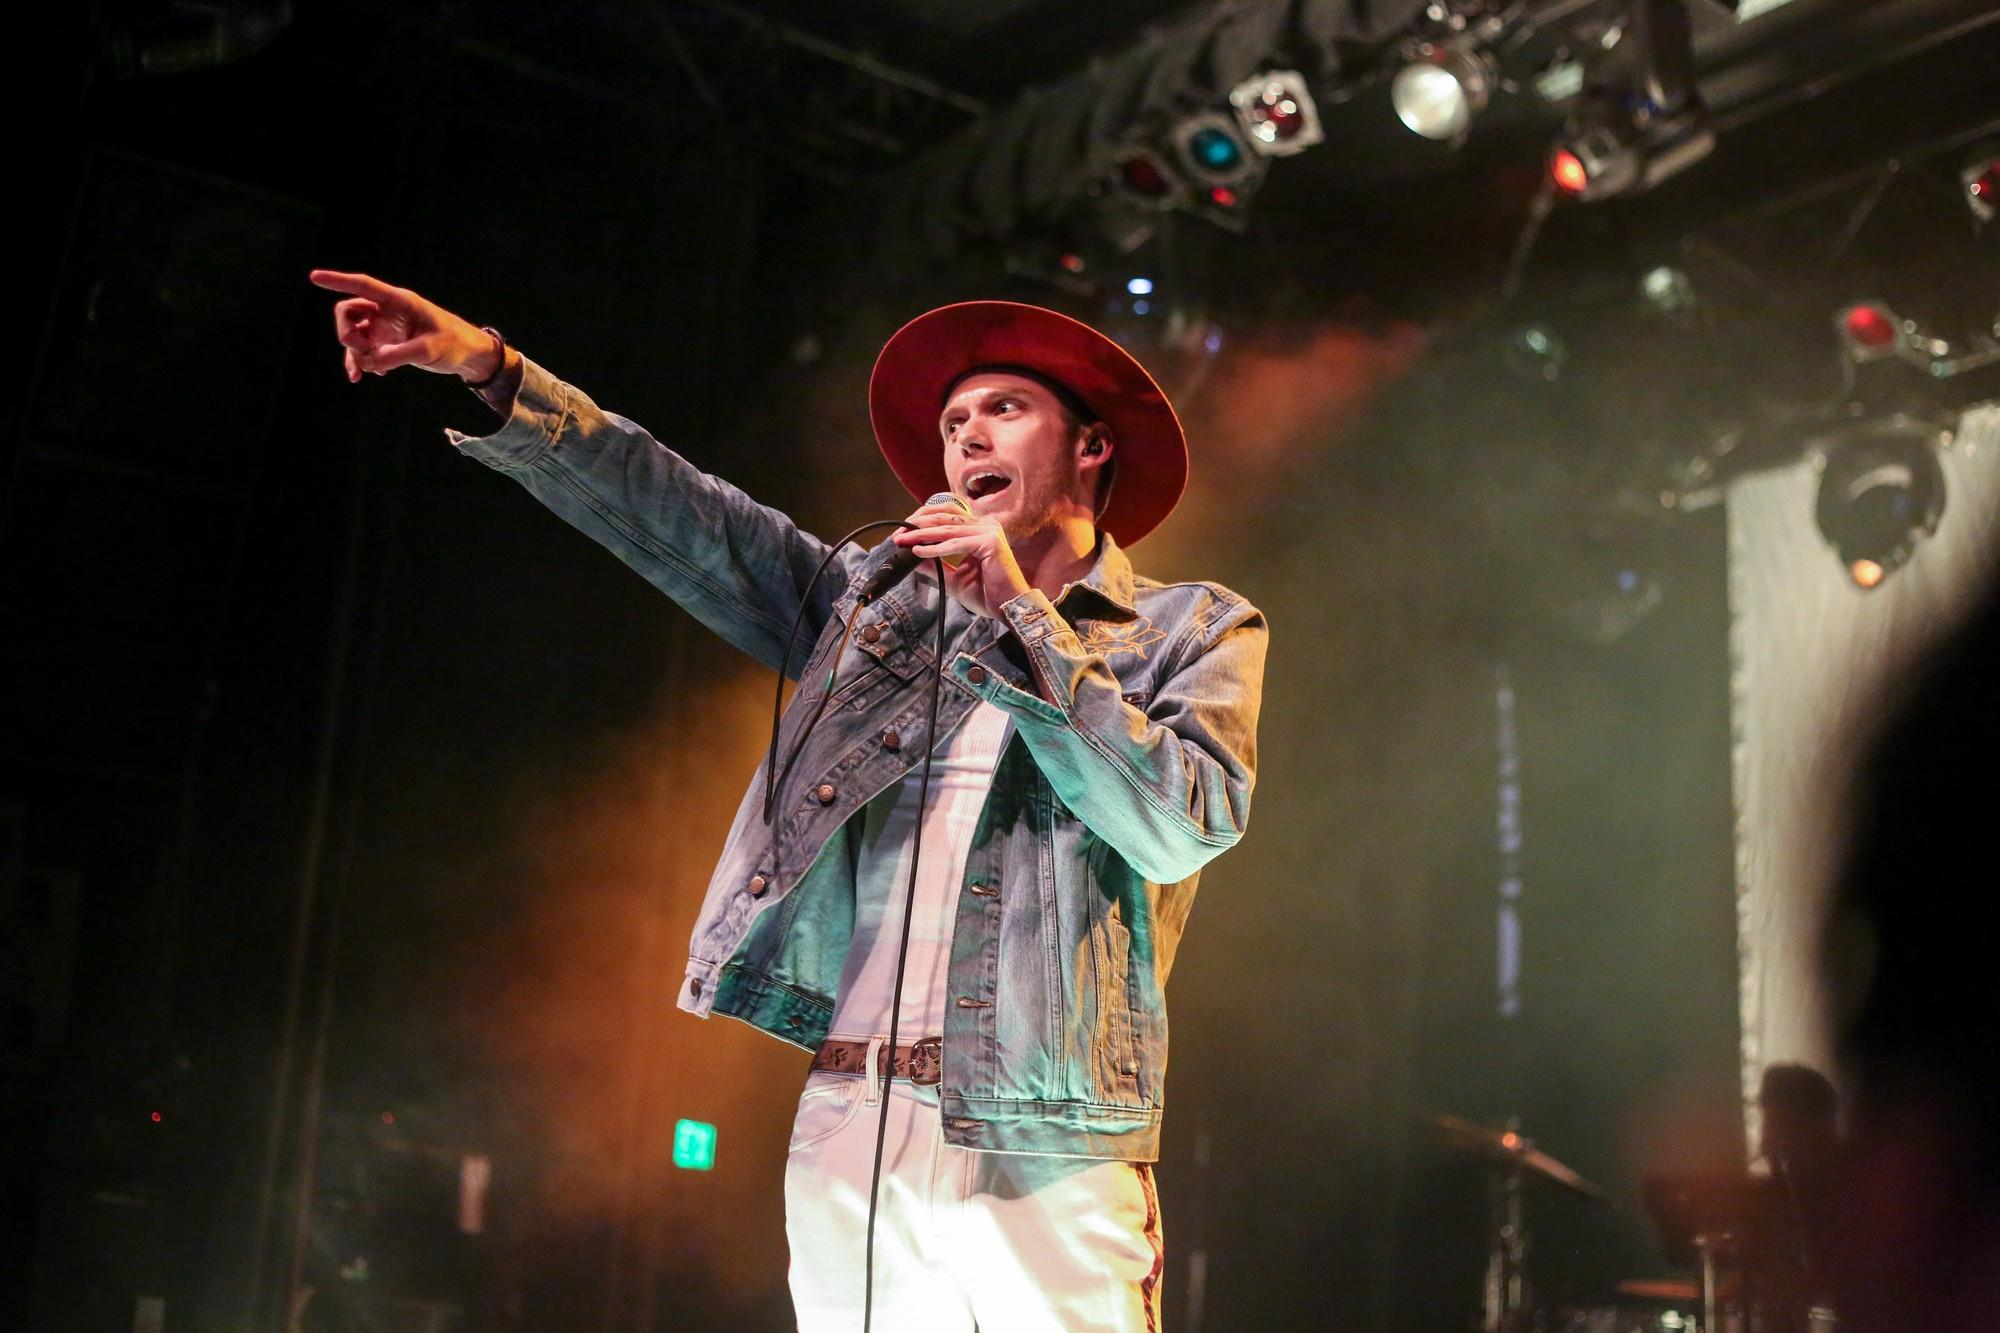 Harry Hudson wearing his signature vintage hat on the El Rey stage. Photo credit: Joshua Pacheco